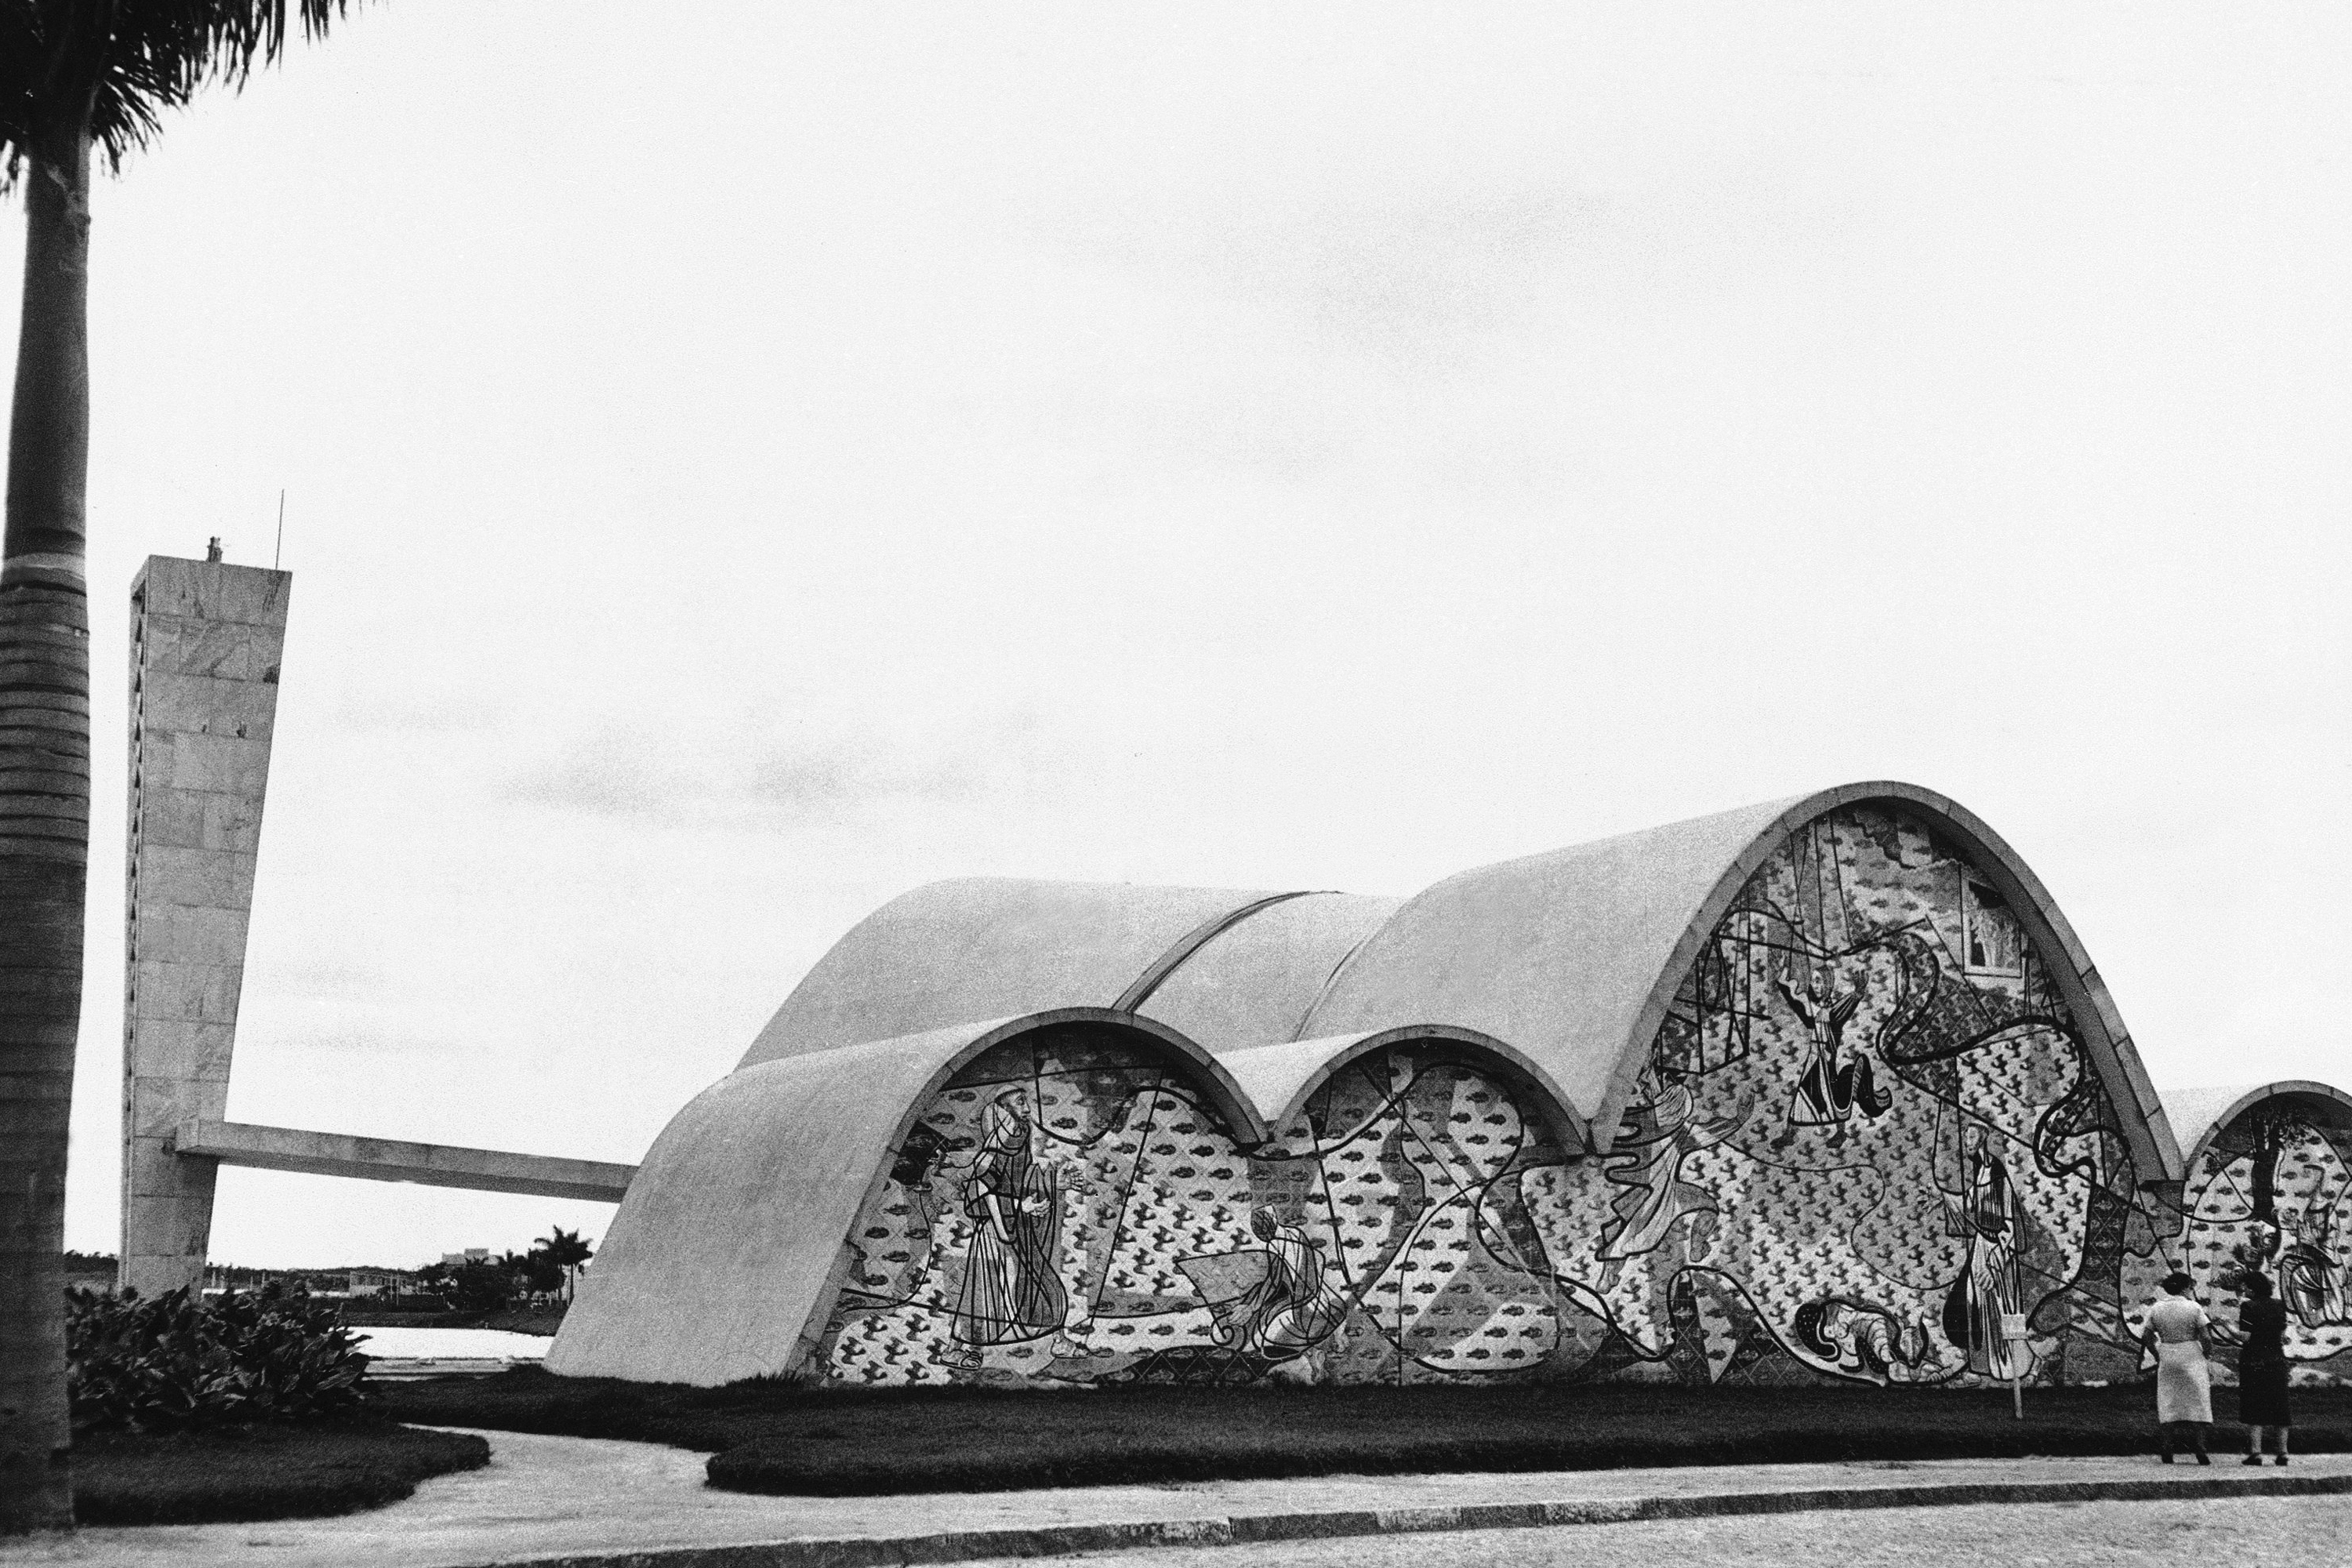 """One of Oscar Niemeyer's earliest projects, built in the early 1940s, came to be known as the """"Pampulha architectural complex."""" It was commissioned by Juscelino Kubitschek, who would later become president of Brazil. At the time, he was mayor of Belo Horizonte. The complex included a church, which was initially refused for consecration by the Roman Catholic Church."""